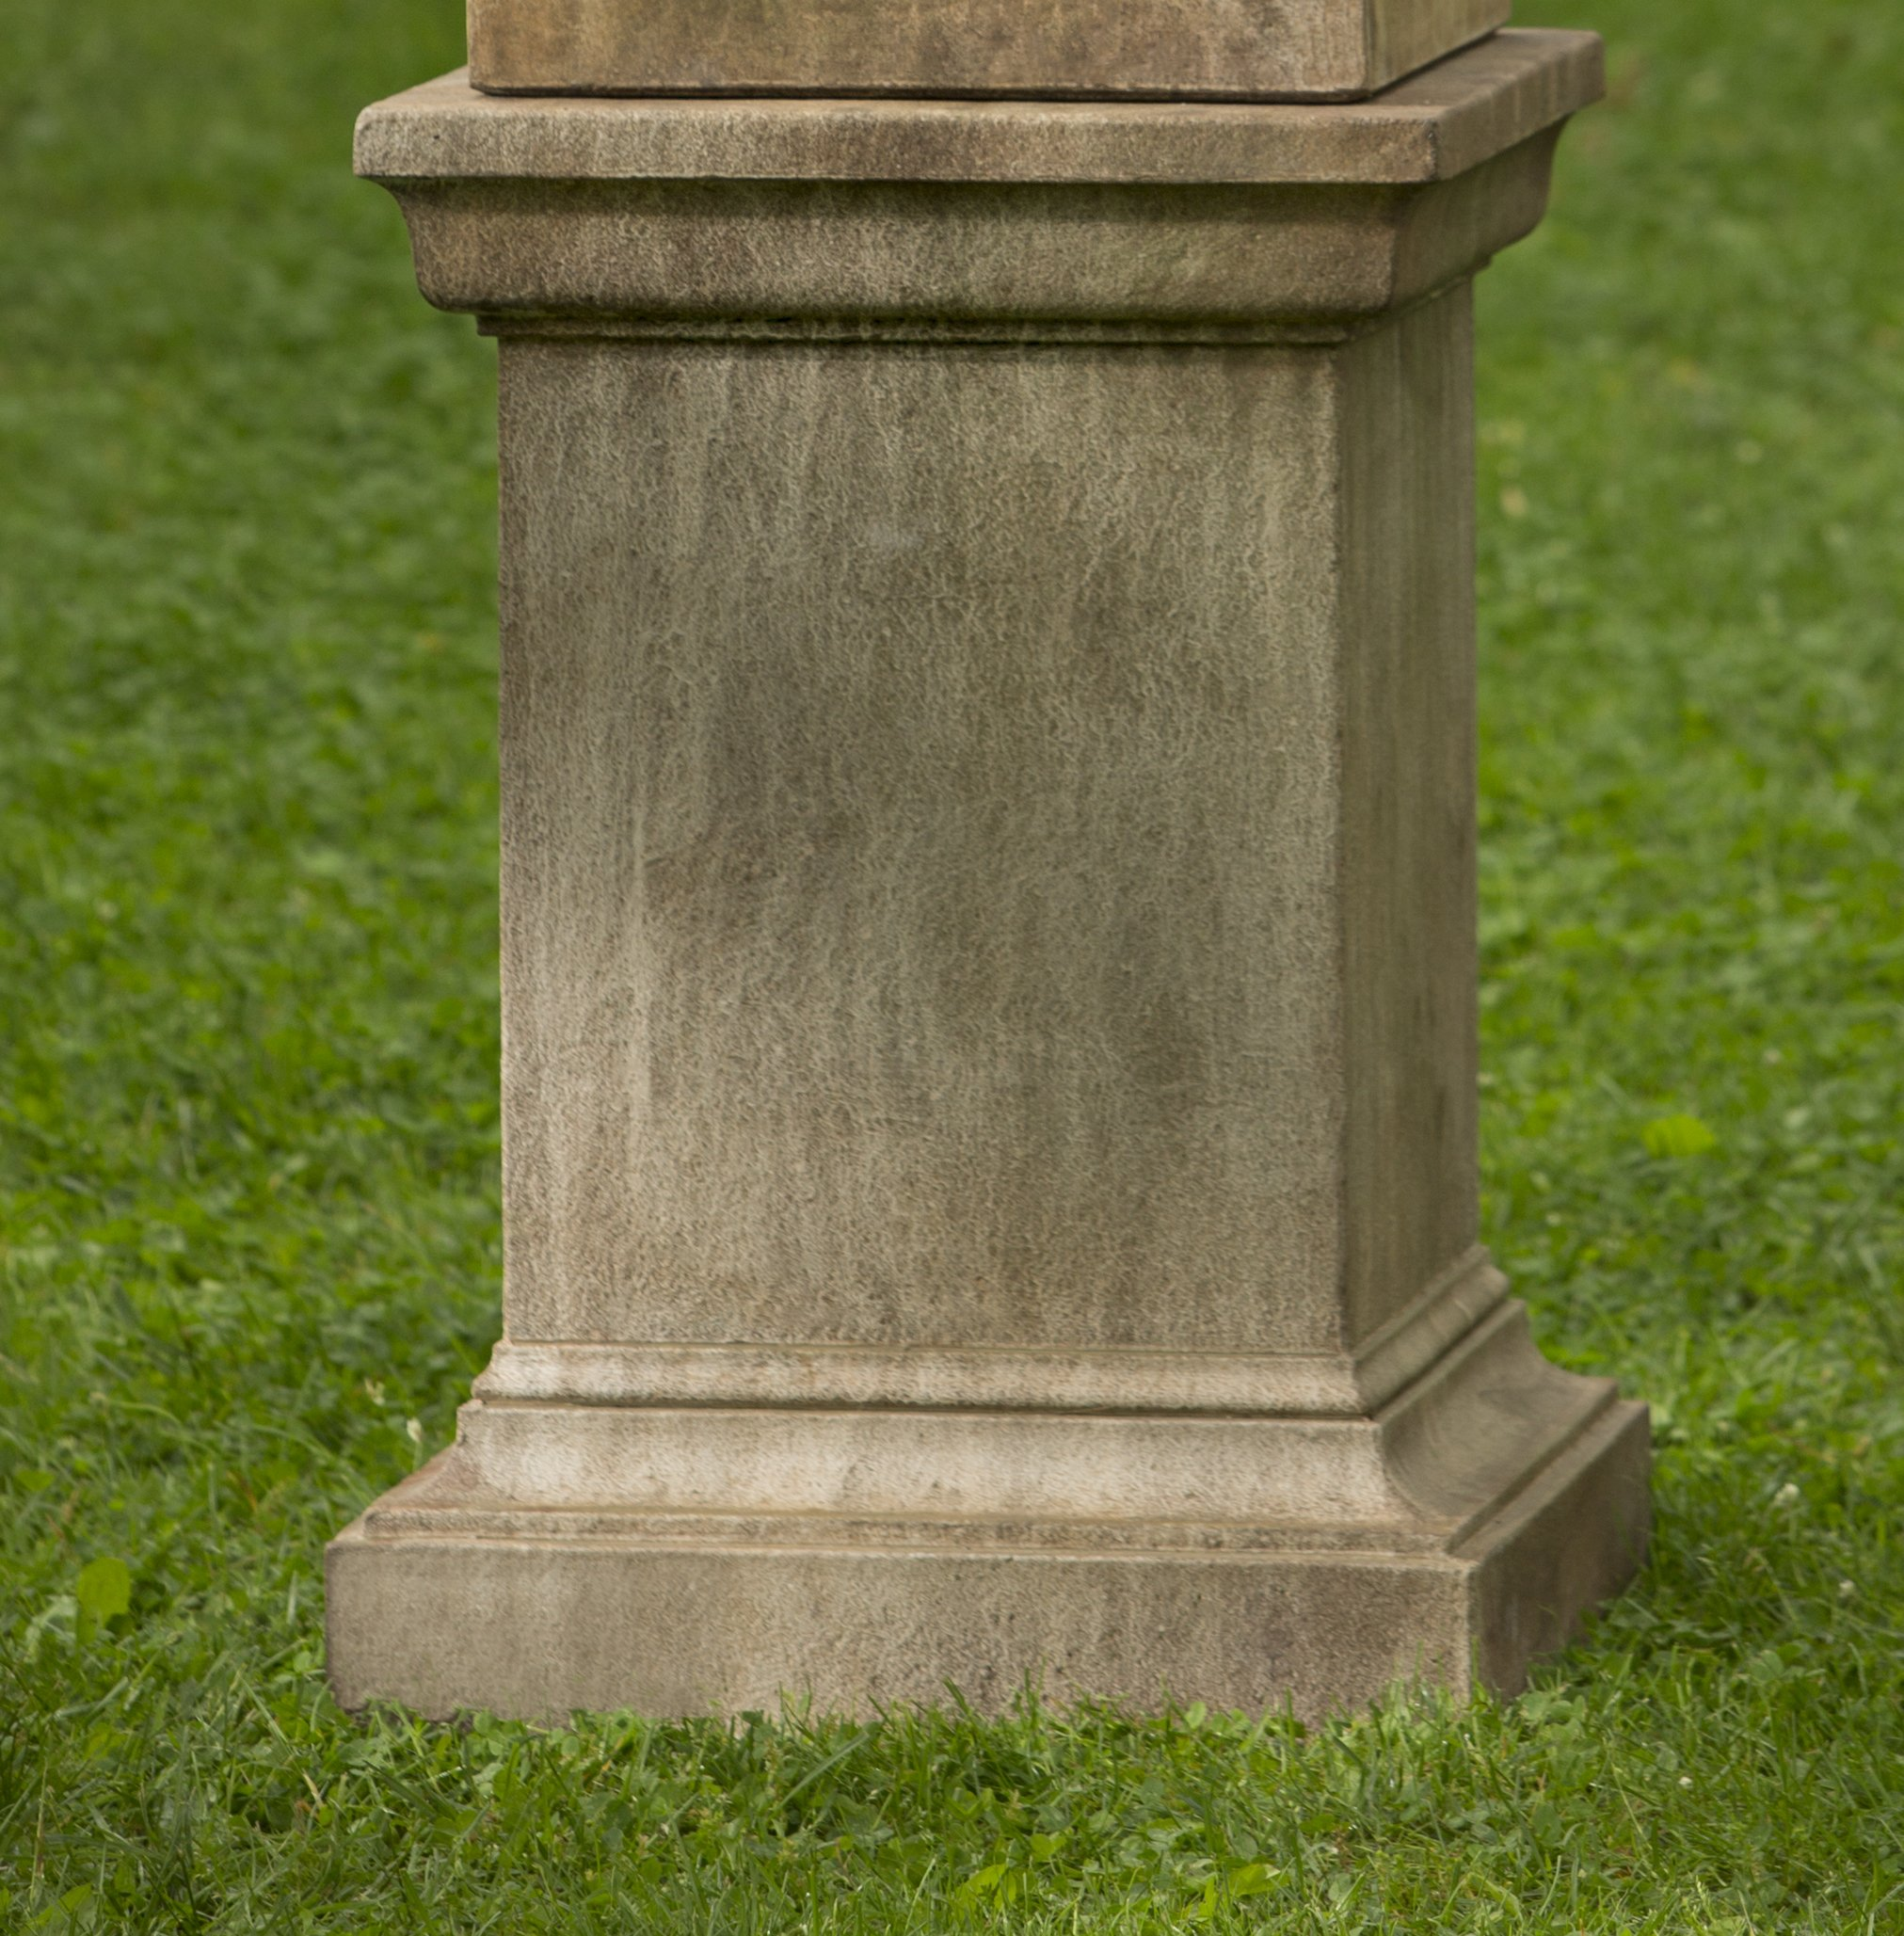 Campania International PD-192-VE Greenwich Pedestal, Verde Finish by Campania International